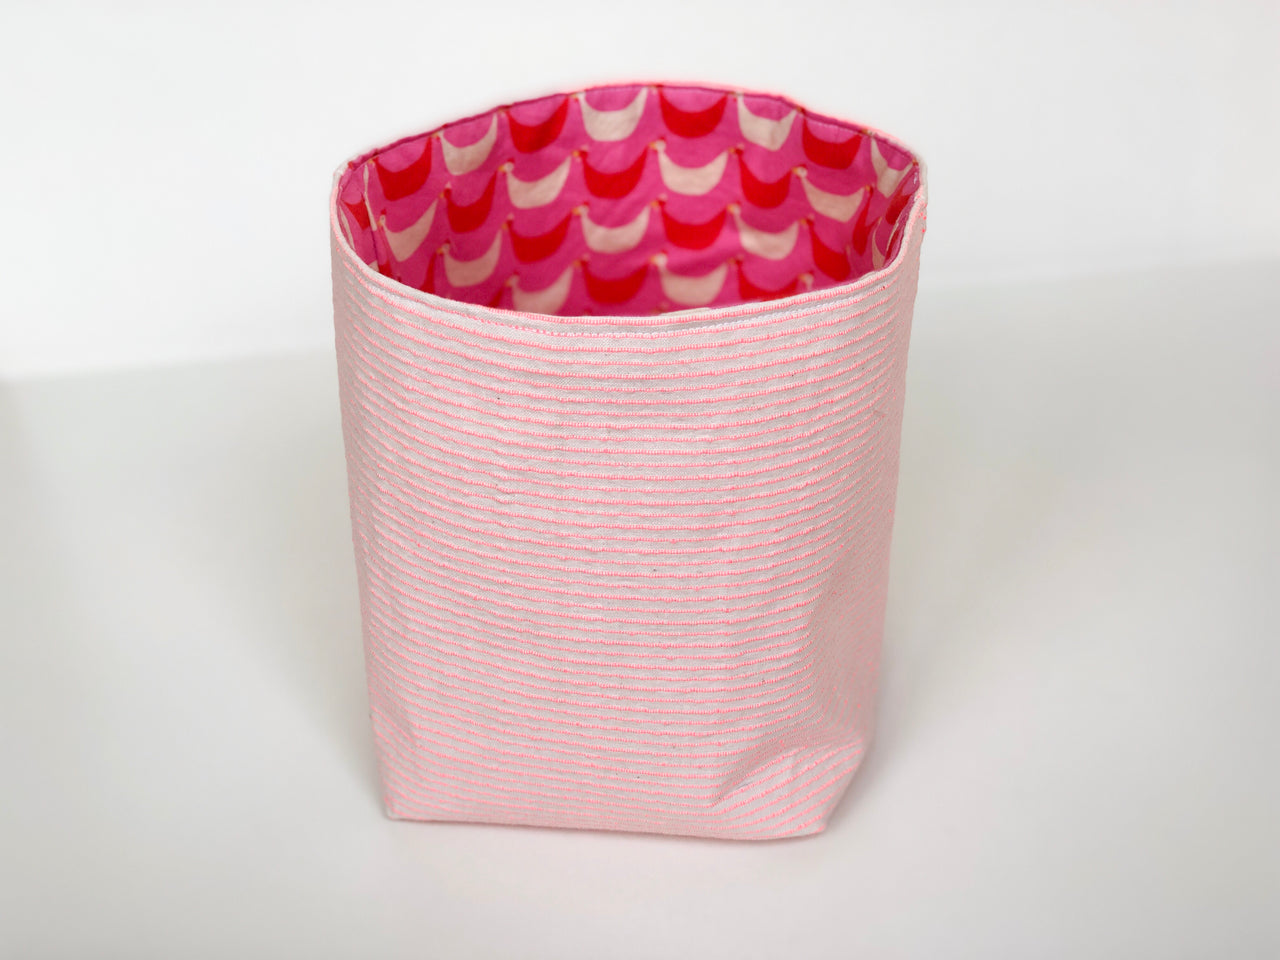 Large cloth basket - pink and white